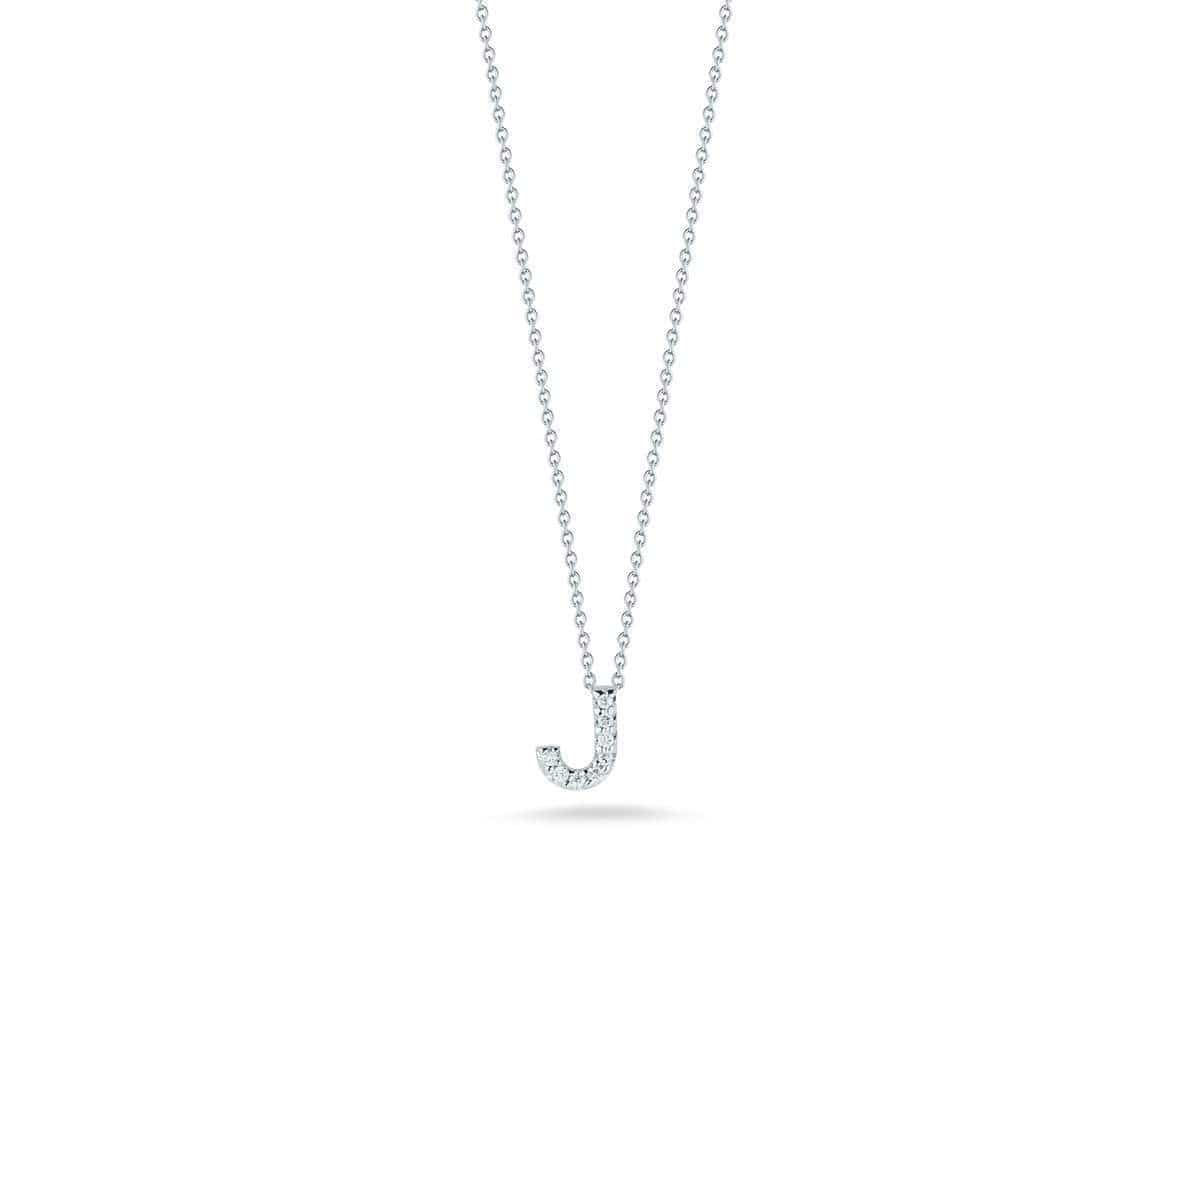 18k White Gold & Diamond Love Letter J Necklace - 001634AWCHXJ-Roberto Coin-Renee Taylor Gallery